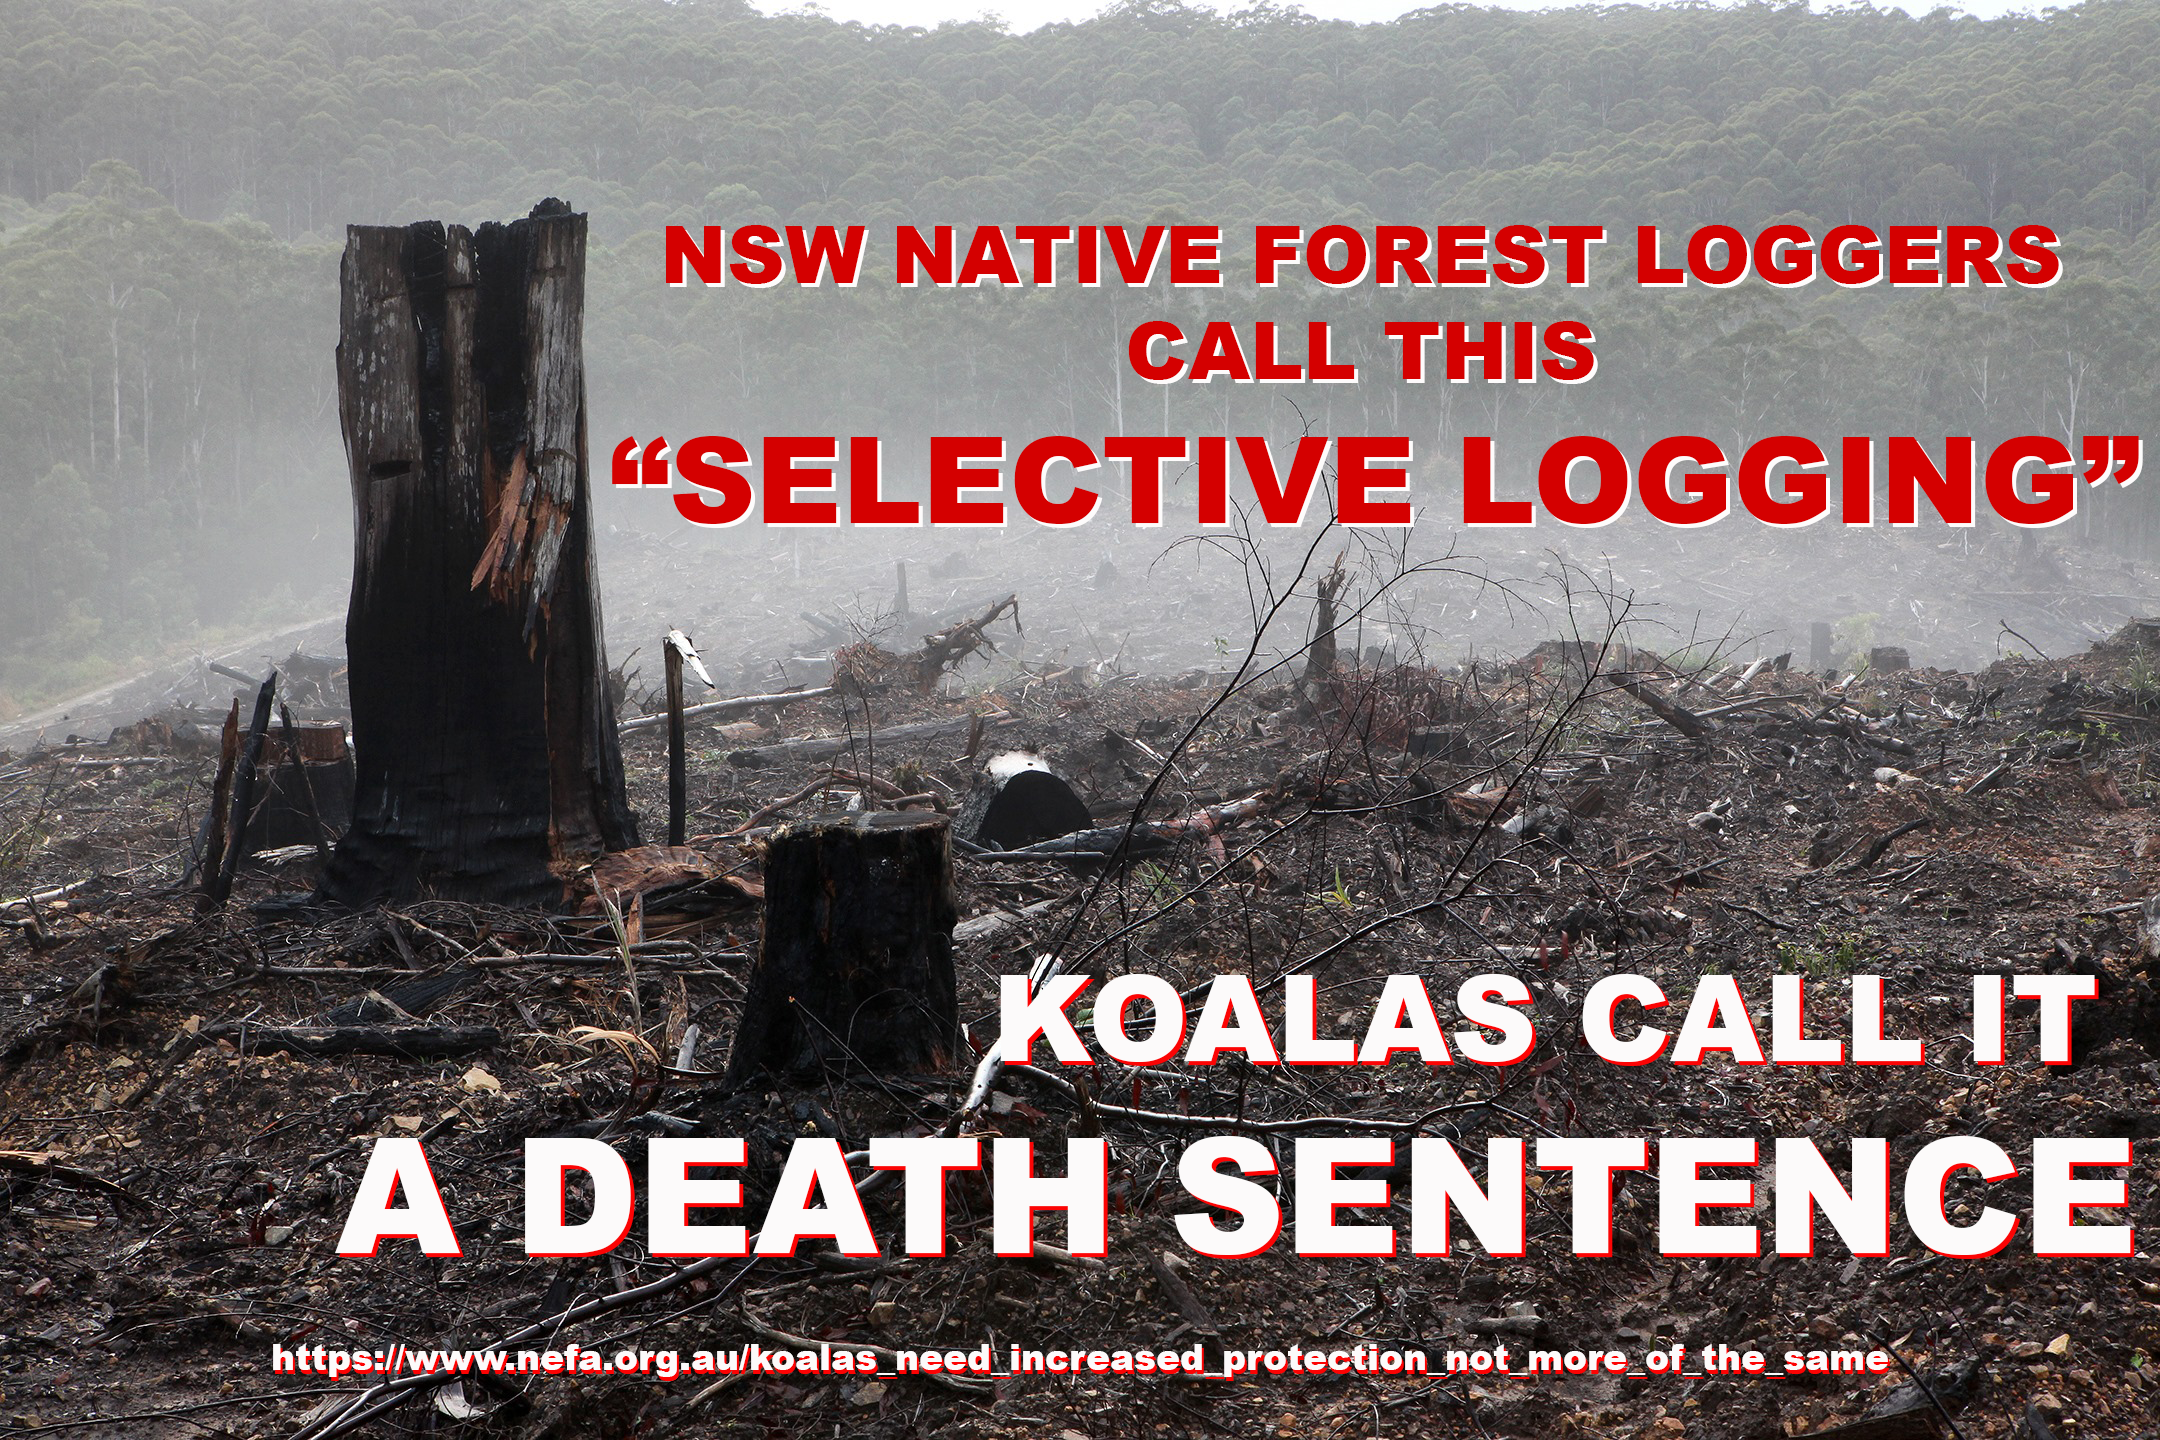 """NSW NATIVE FOREST LOGGERS  CALL THIS """"SELECTIVE LOGGING"""" KOALAS CALL IT  A DEATH SENTENCE"""